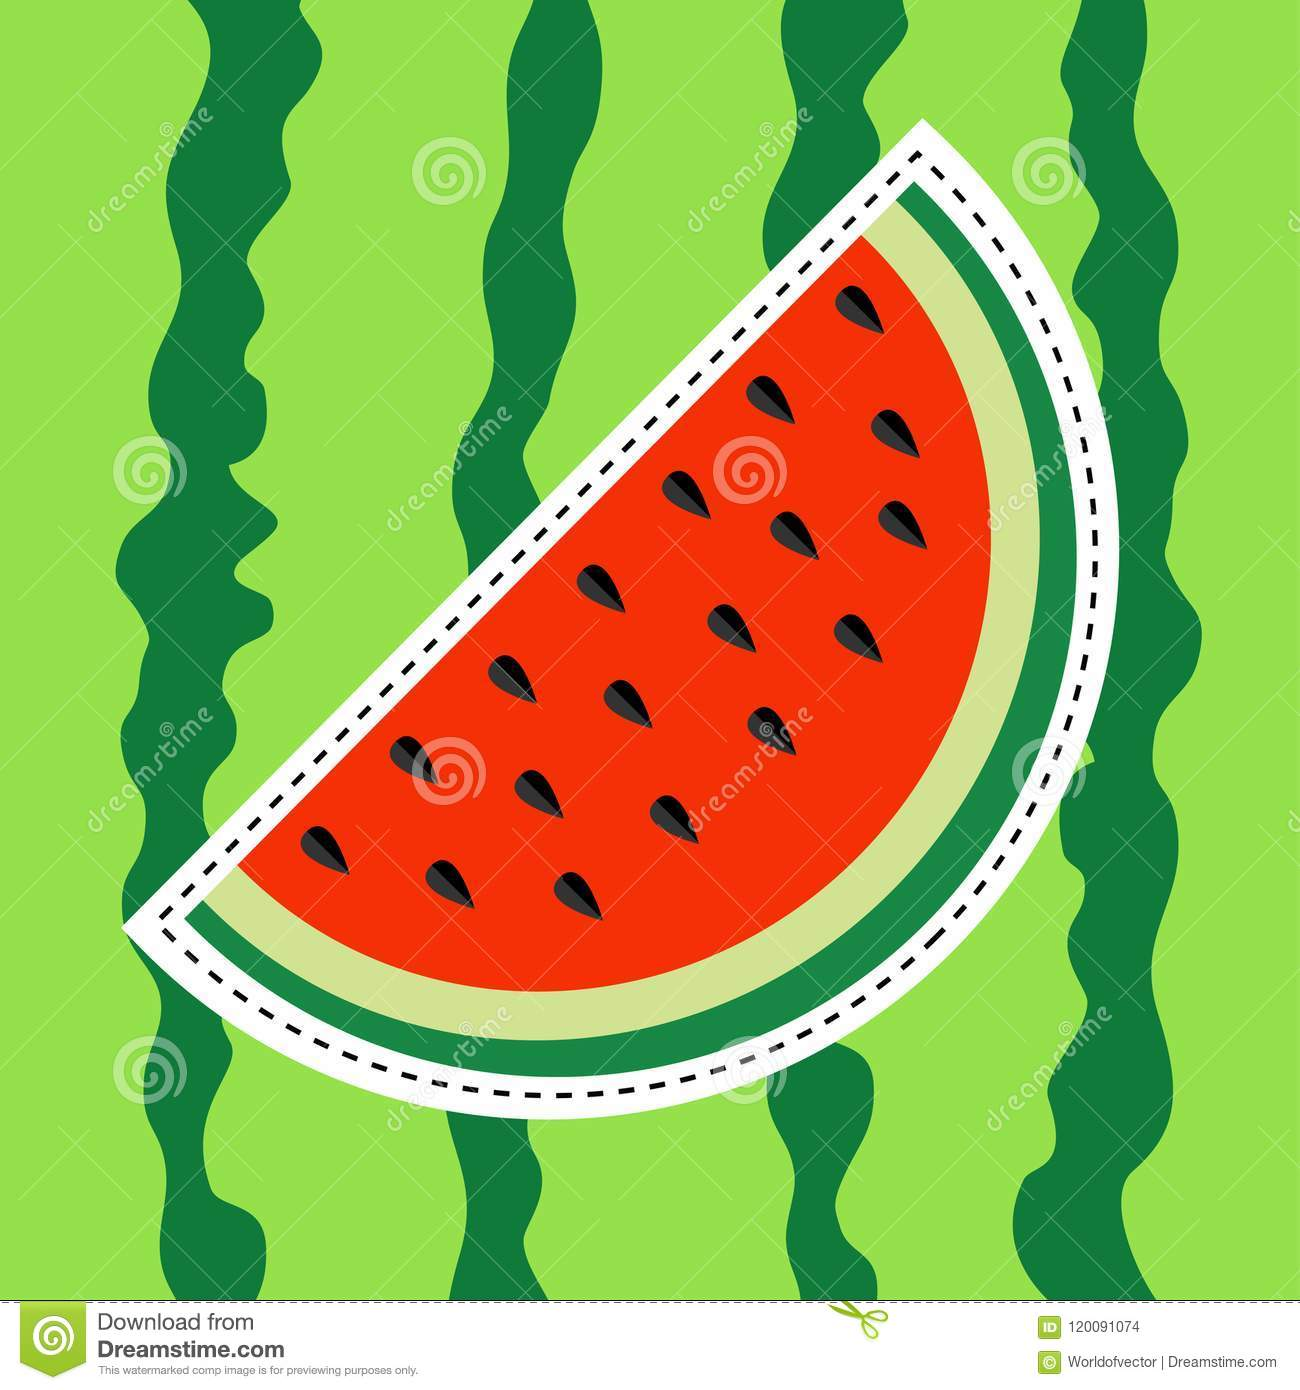 Watermelon slice sticker icon. Dash line. Cut half seeds. Sweet water melon. Red fruit berry flesh. Natural healthy food. Tropical